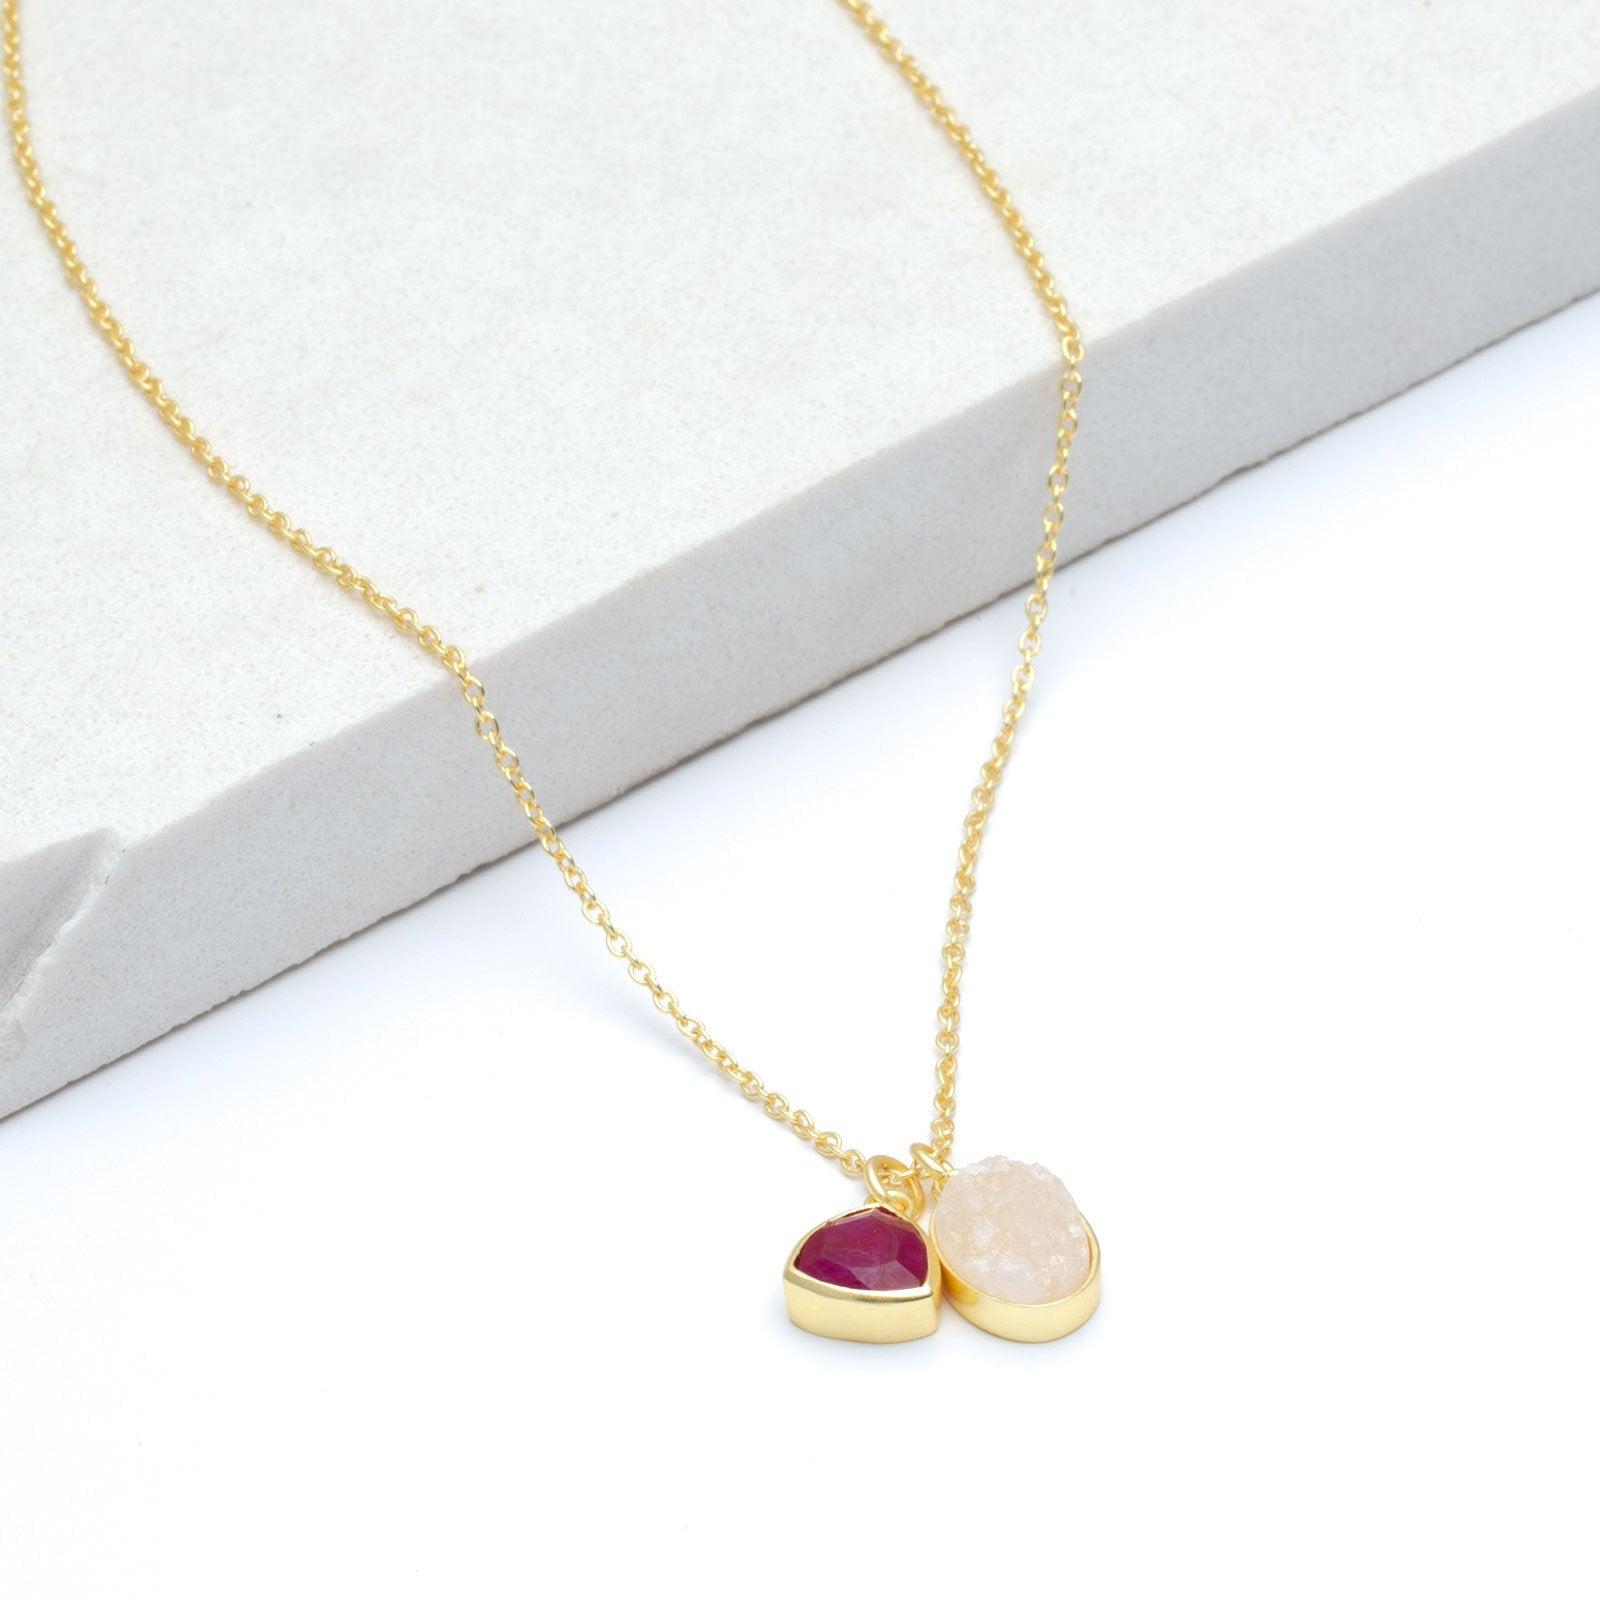 "White Druzy & Cherry Ruby Double Pendant Necklace, 18"" - Gold Plated"